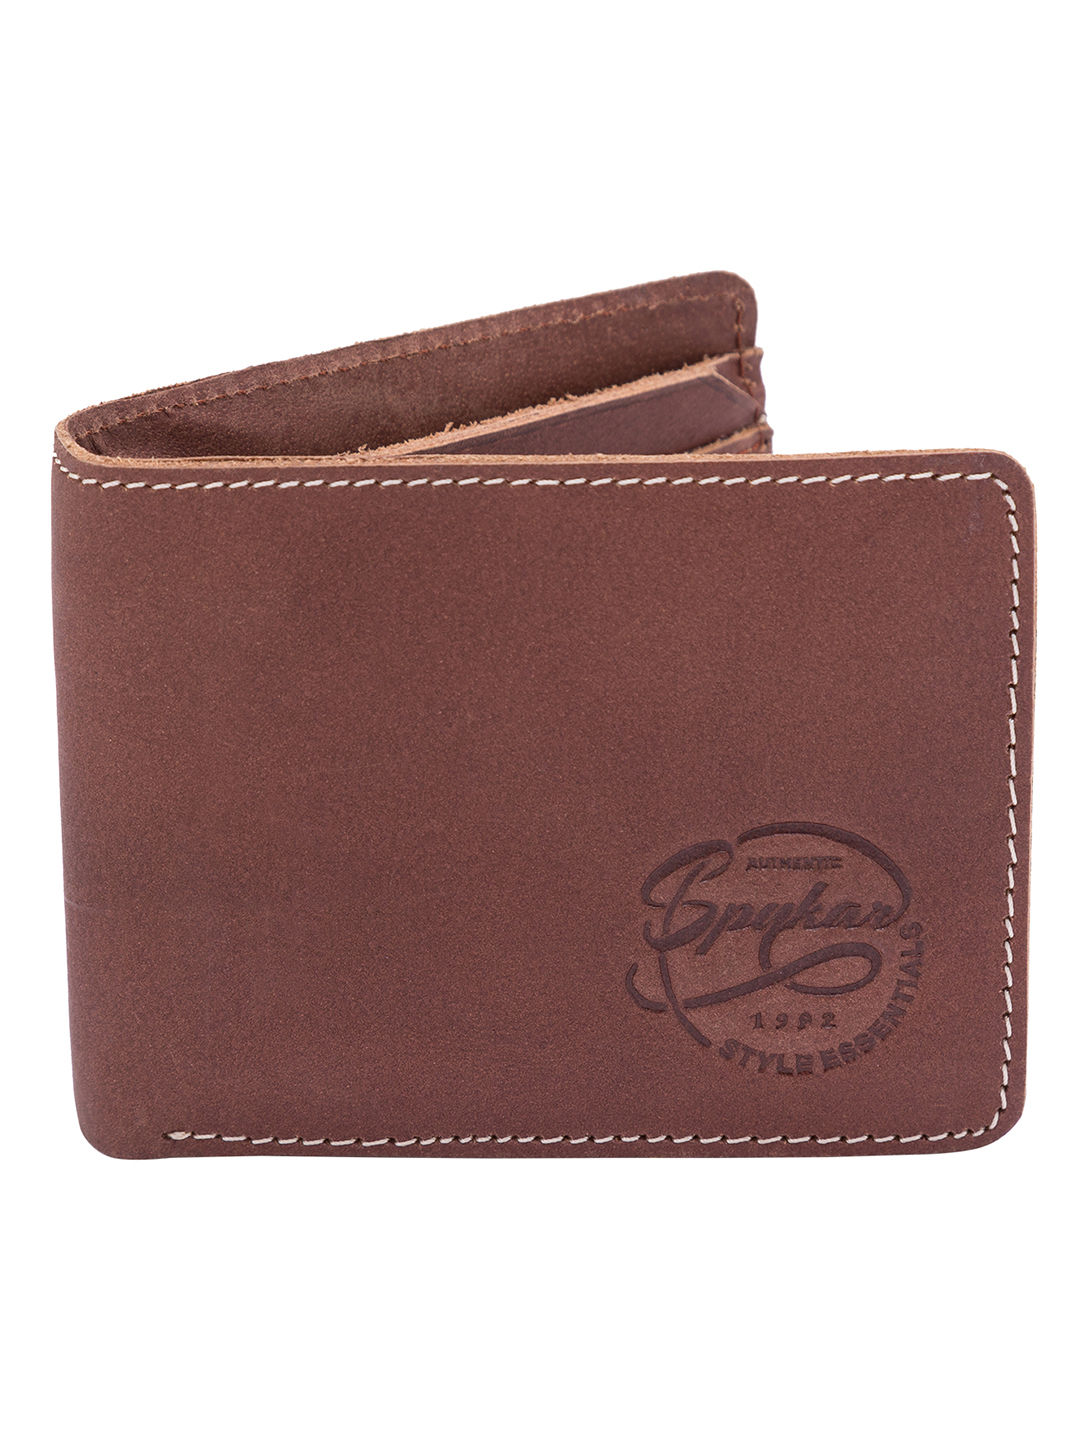 Spykar Leather Brown Wallets